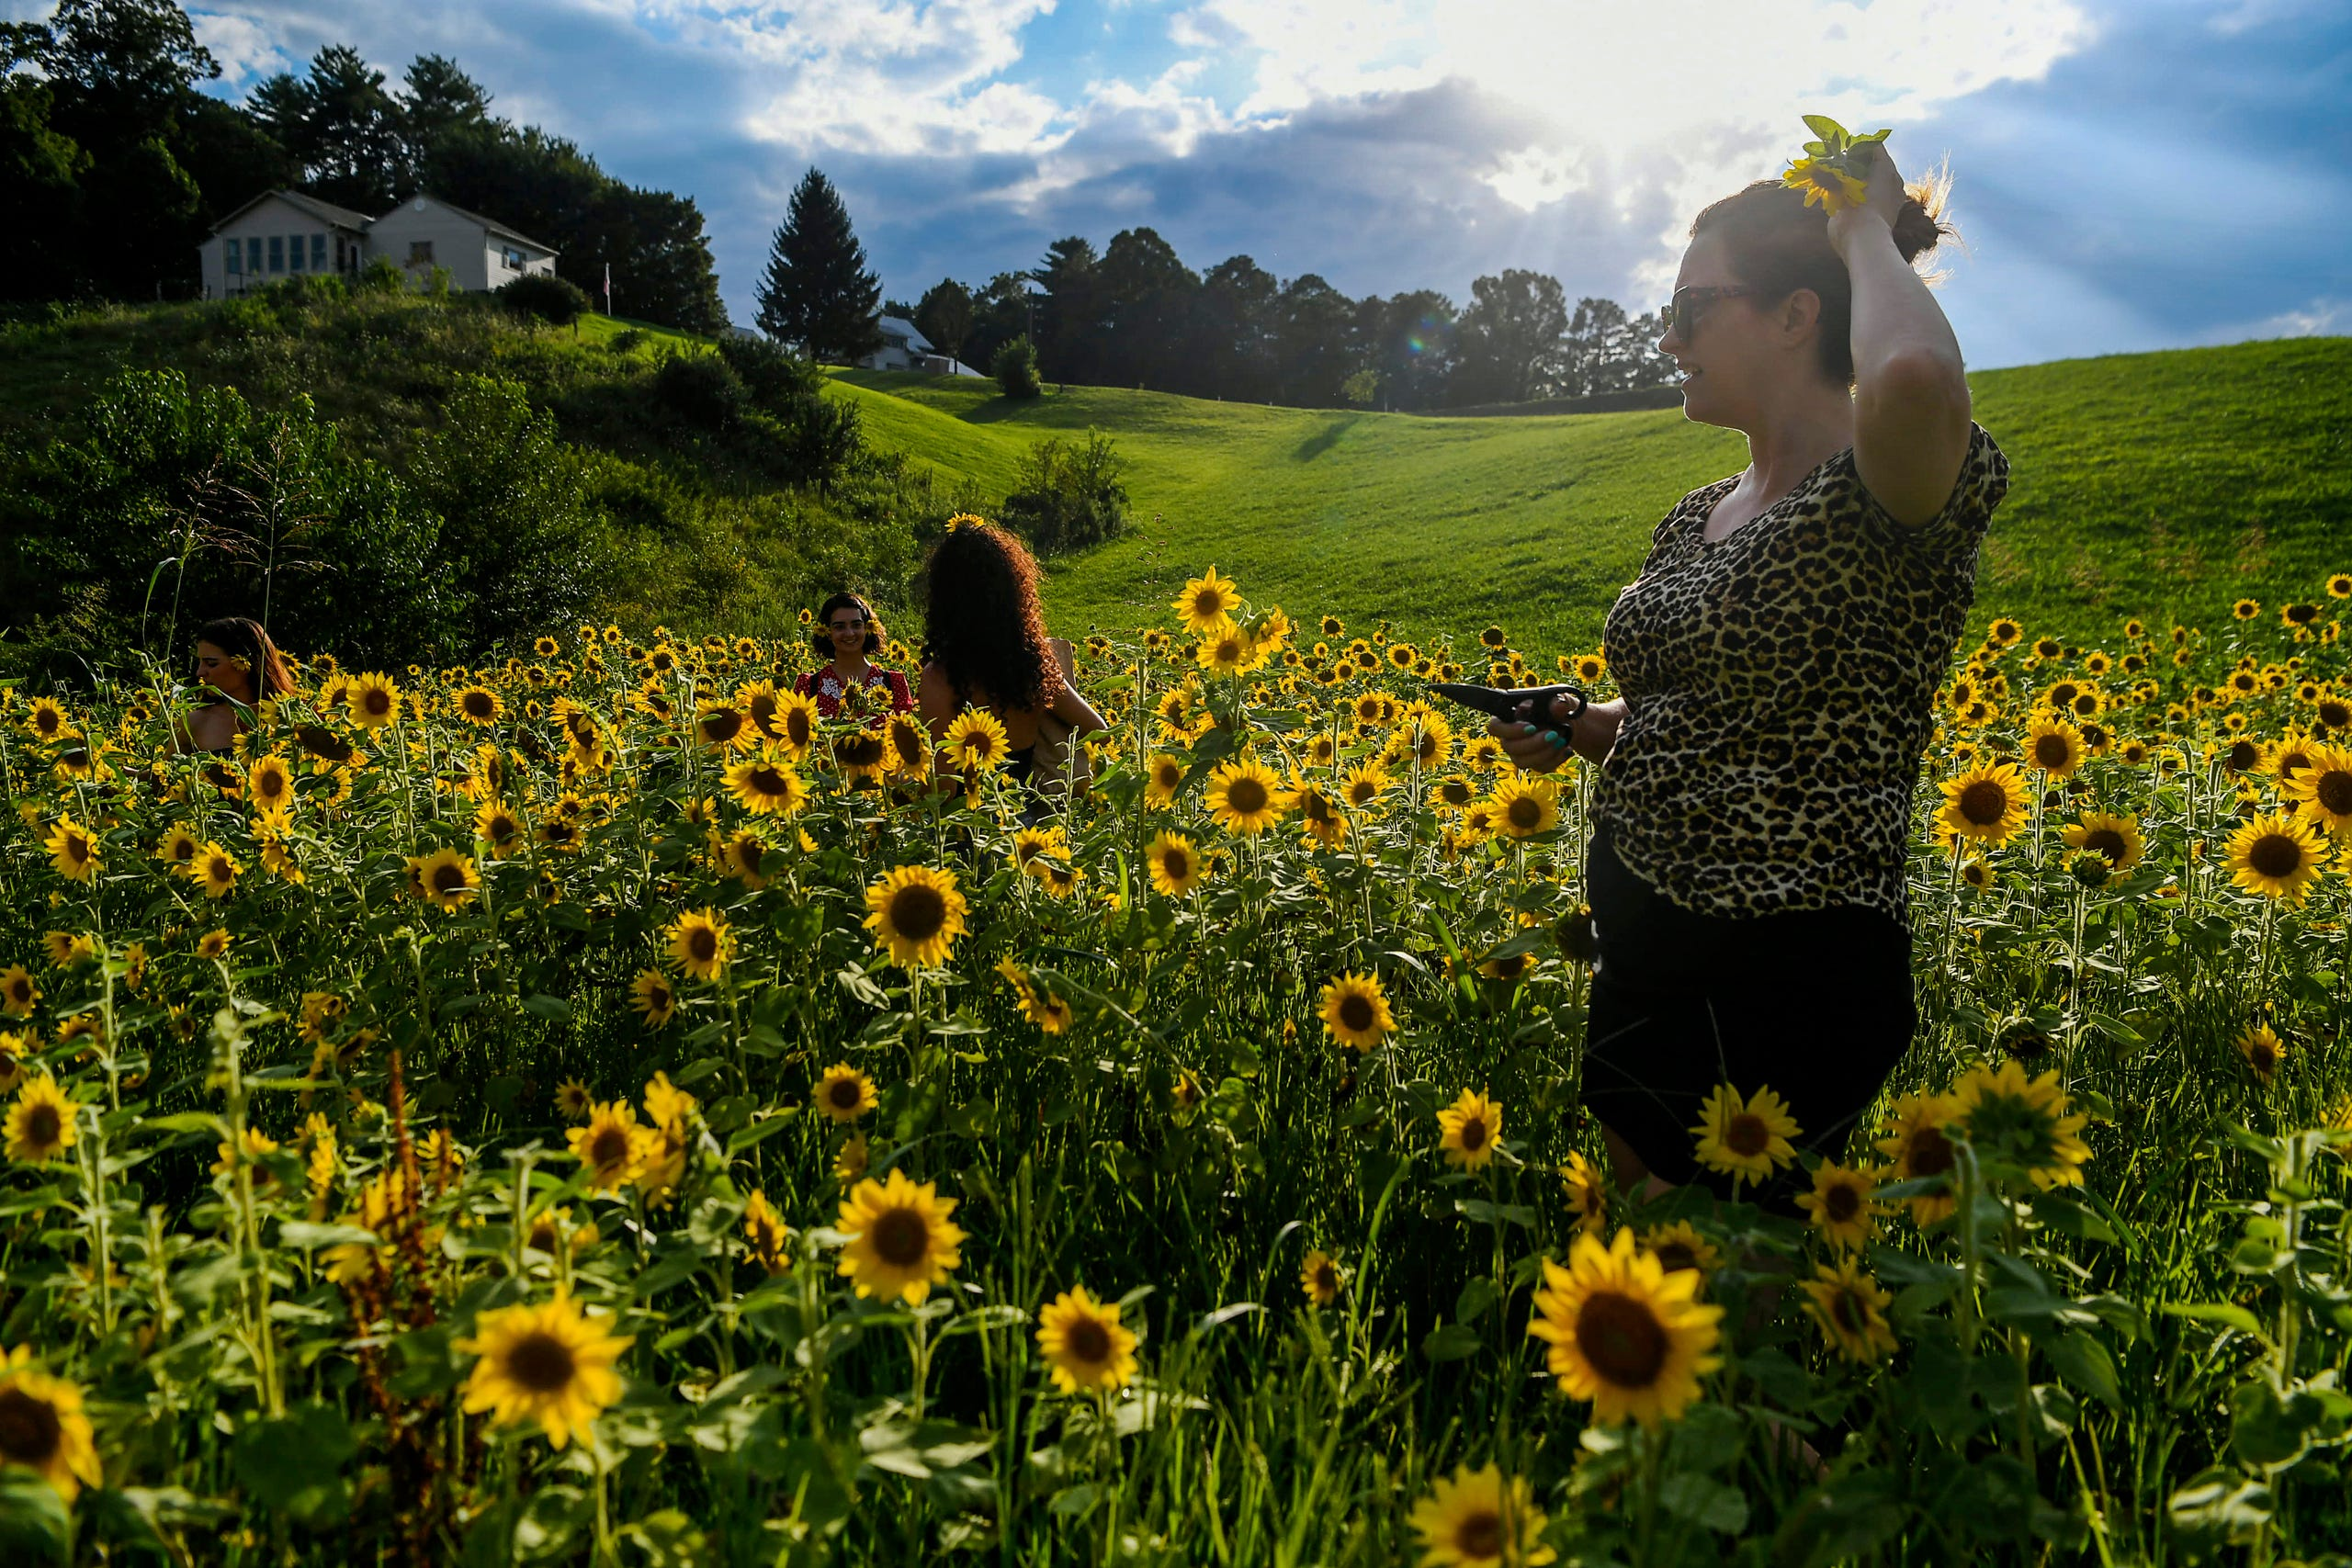 """Holly Mason places a sunflower in her hair at Olivette Farm as she prepares to """"flower bomb"""" Craggy Bridge in Woodfin August 19, 2020."""